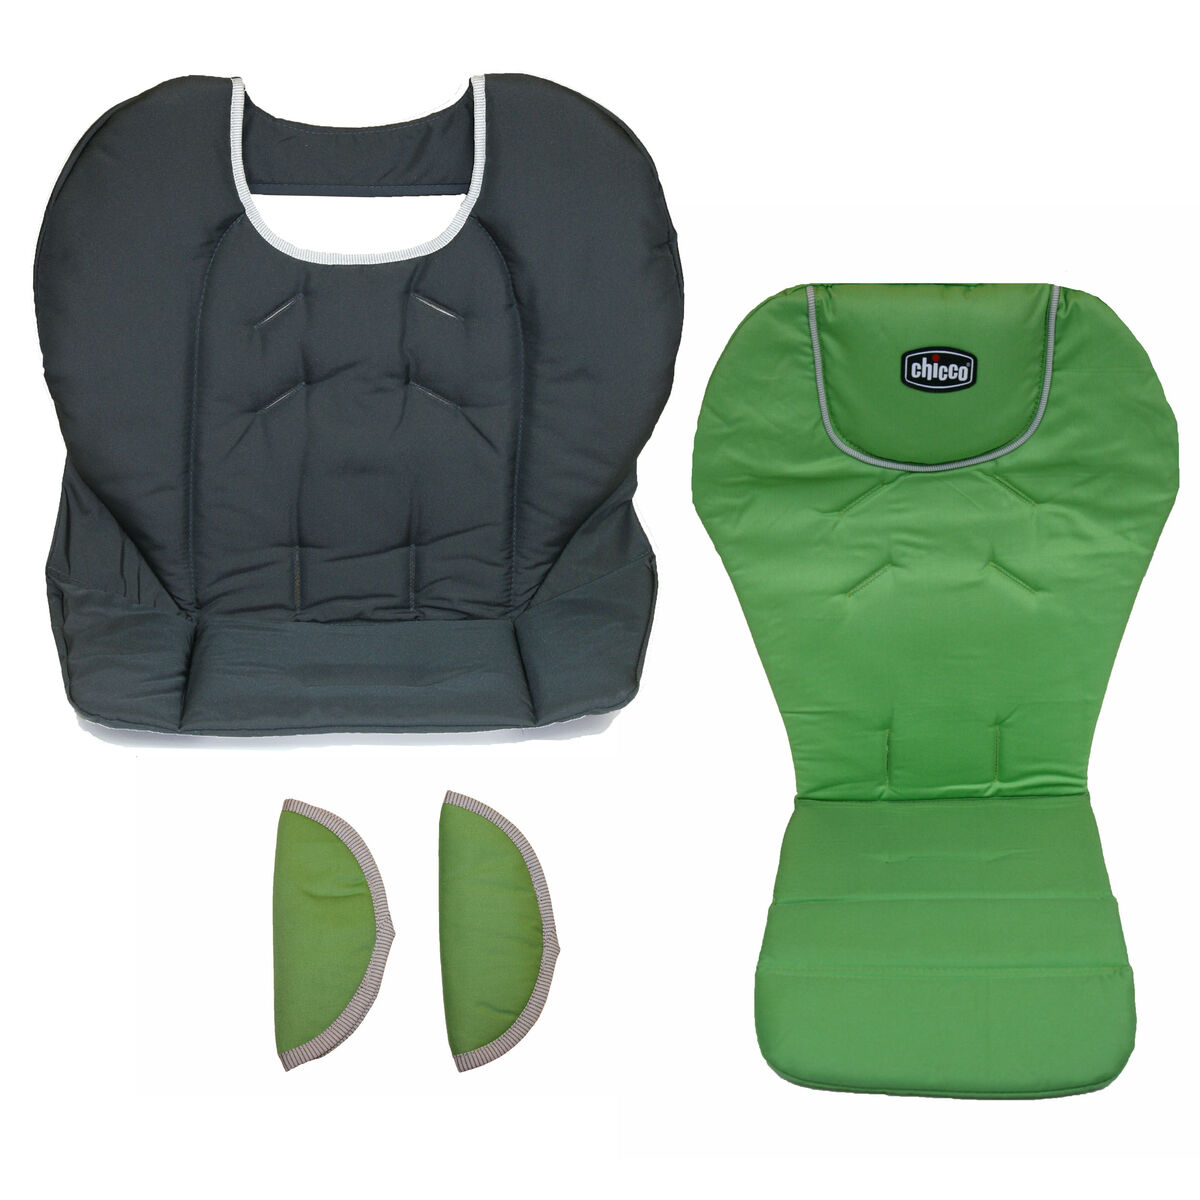 Polly Highchair Seat Cover Replacement